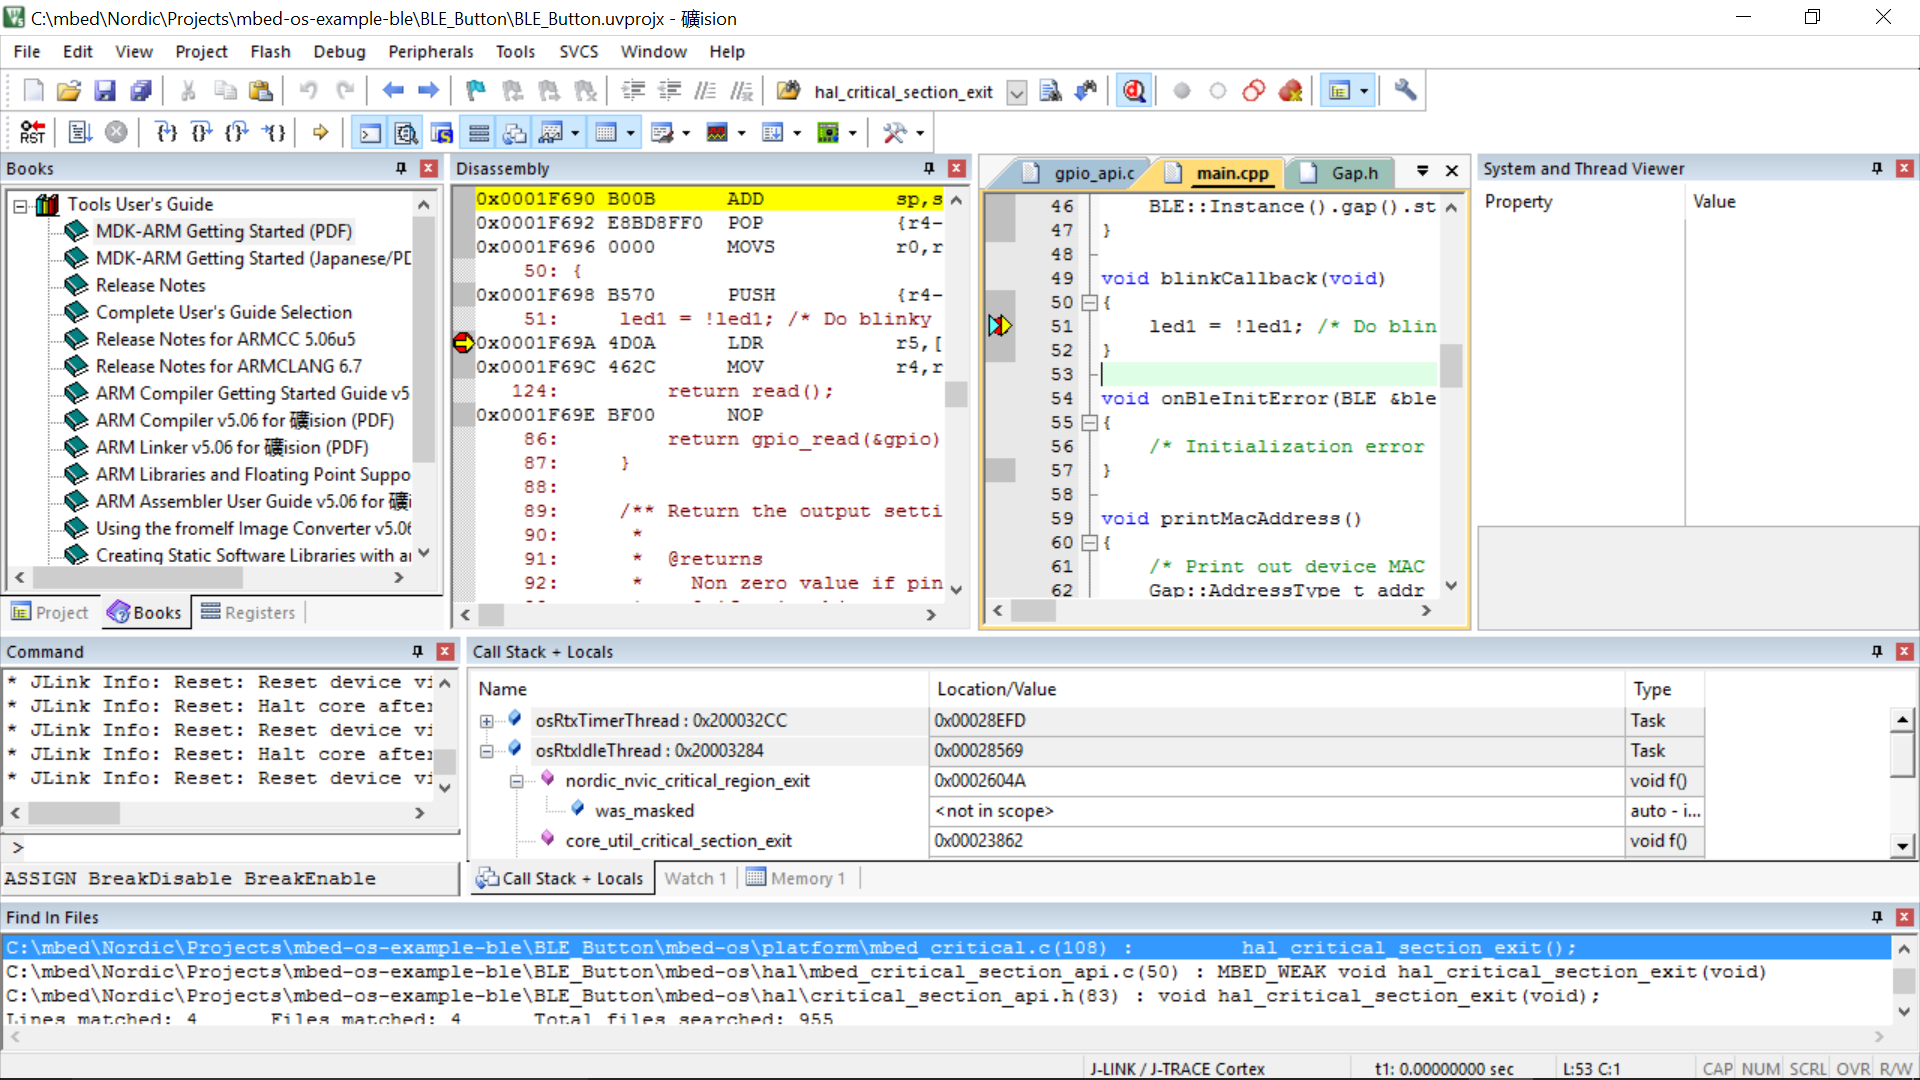 uVision debugging issue with